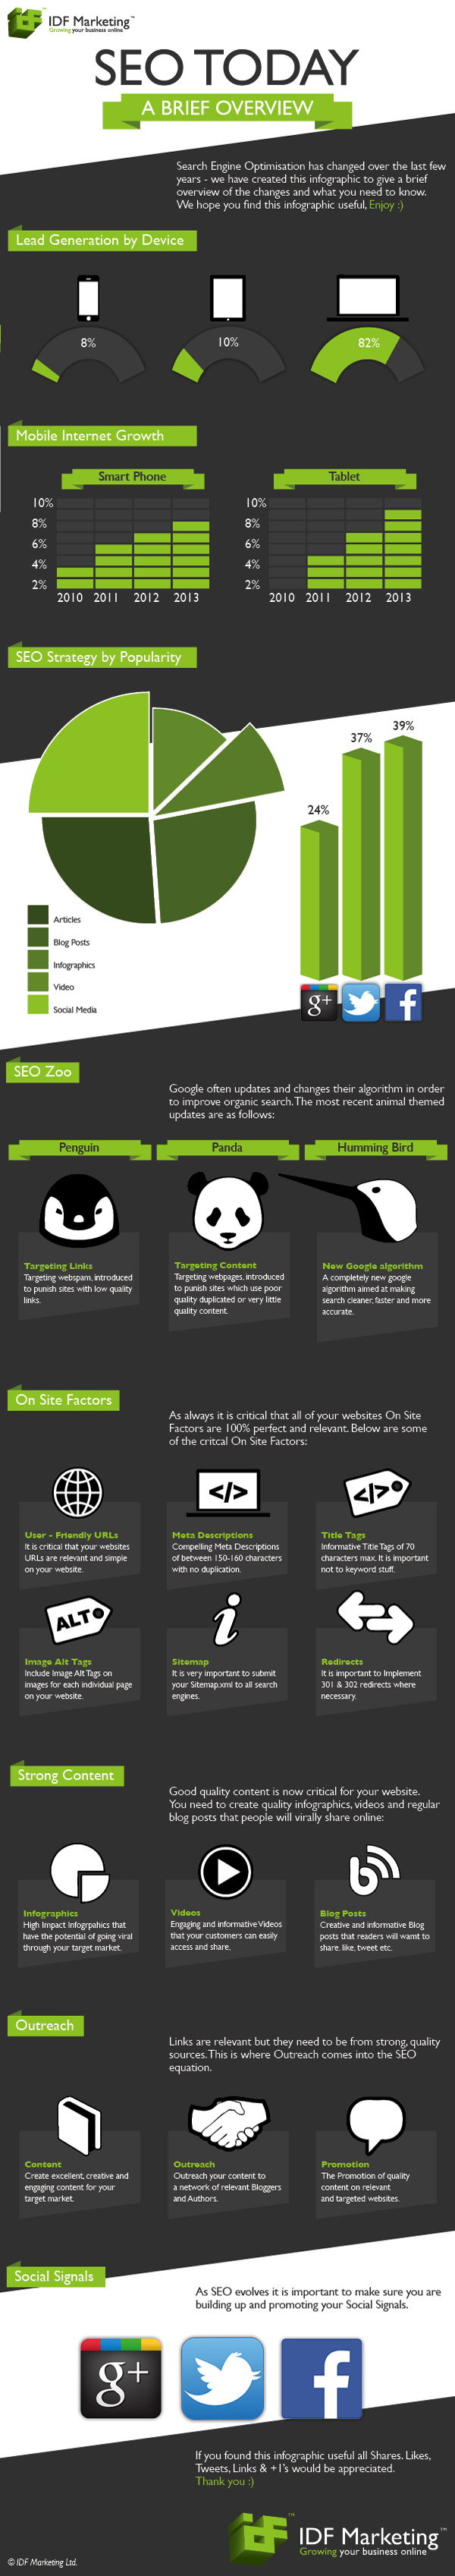 idfmarketing-seo-infographic